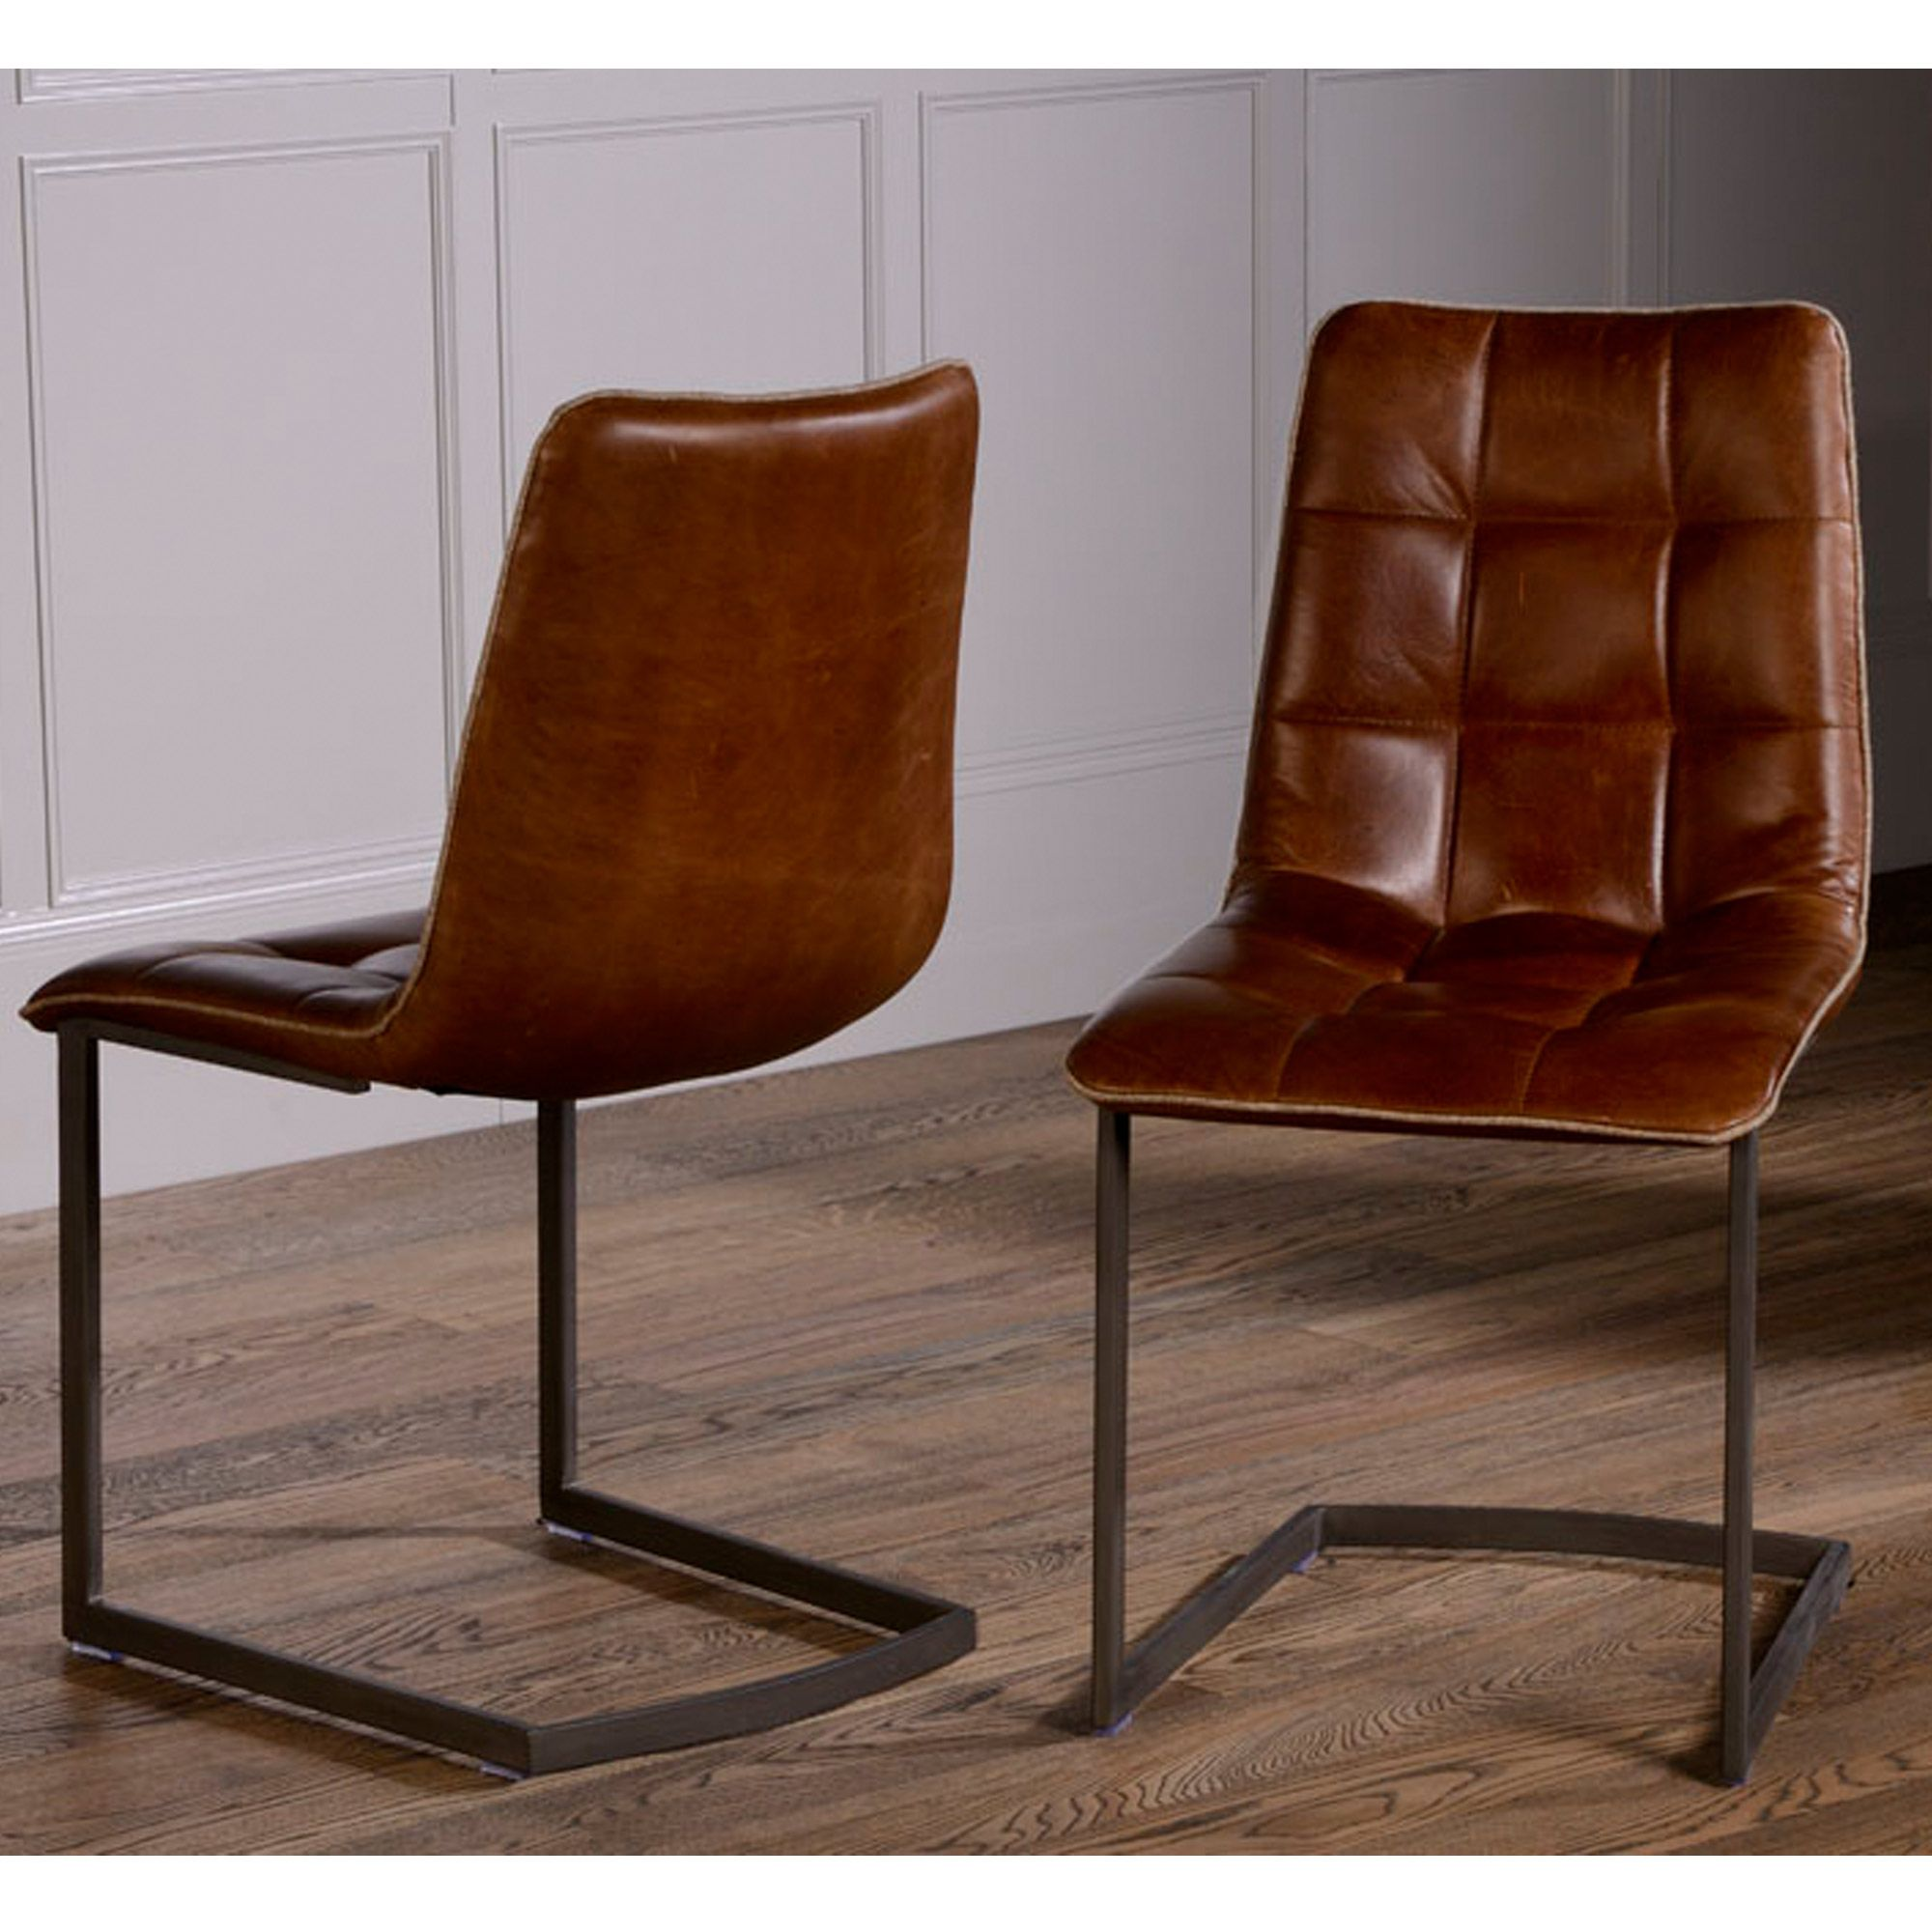 Dining Chairs Brown modern leather dining chairs, modloft modern & contemporary